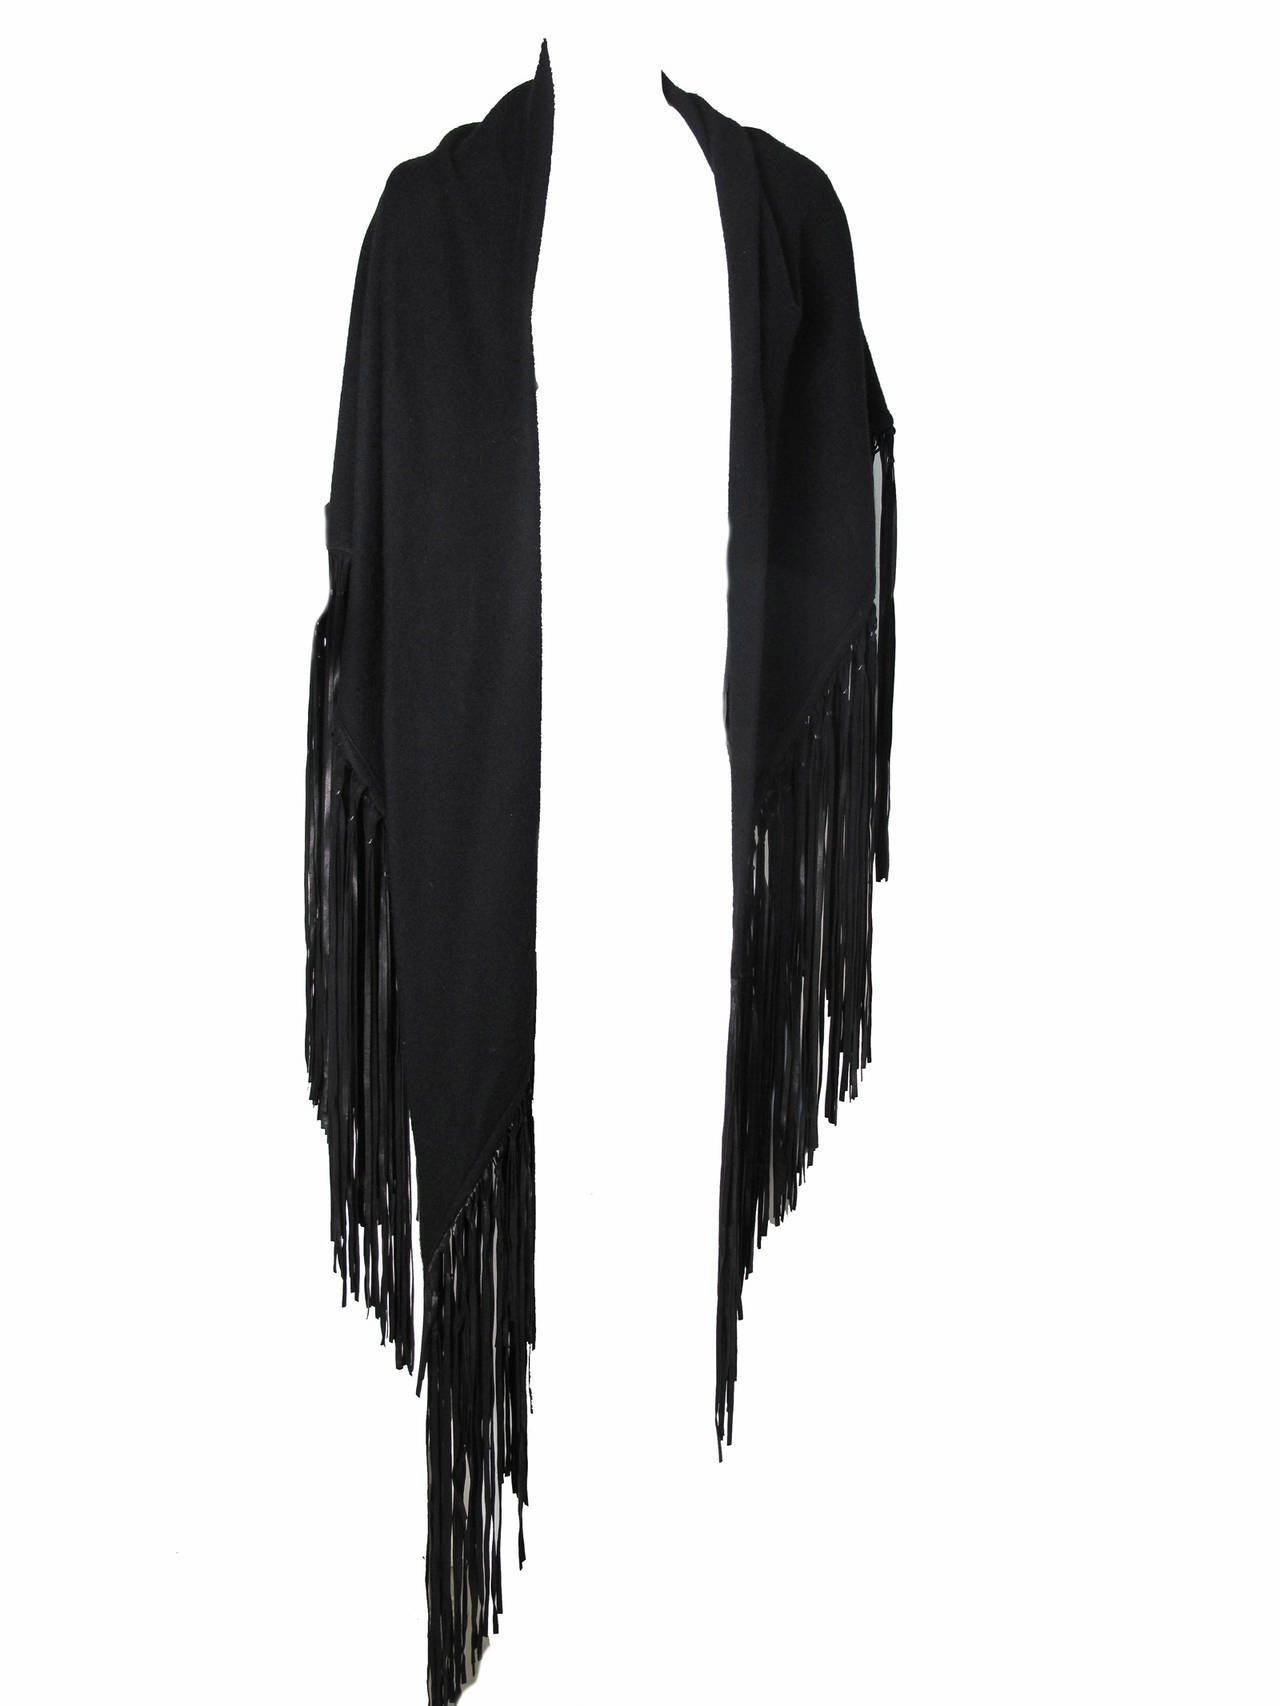 1980s Hermes Black Wool Shawl with Leather Fringe 2